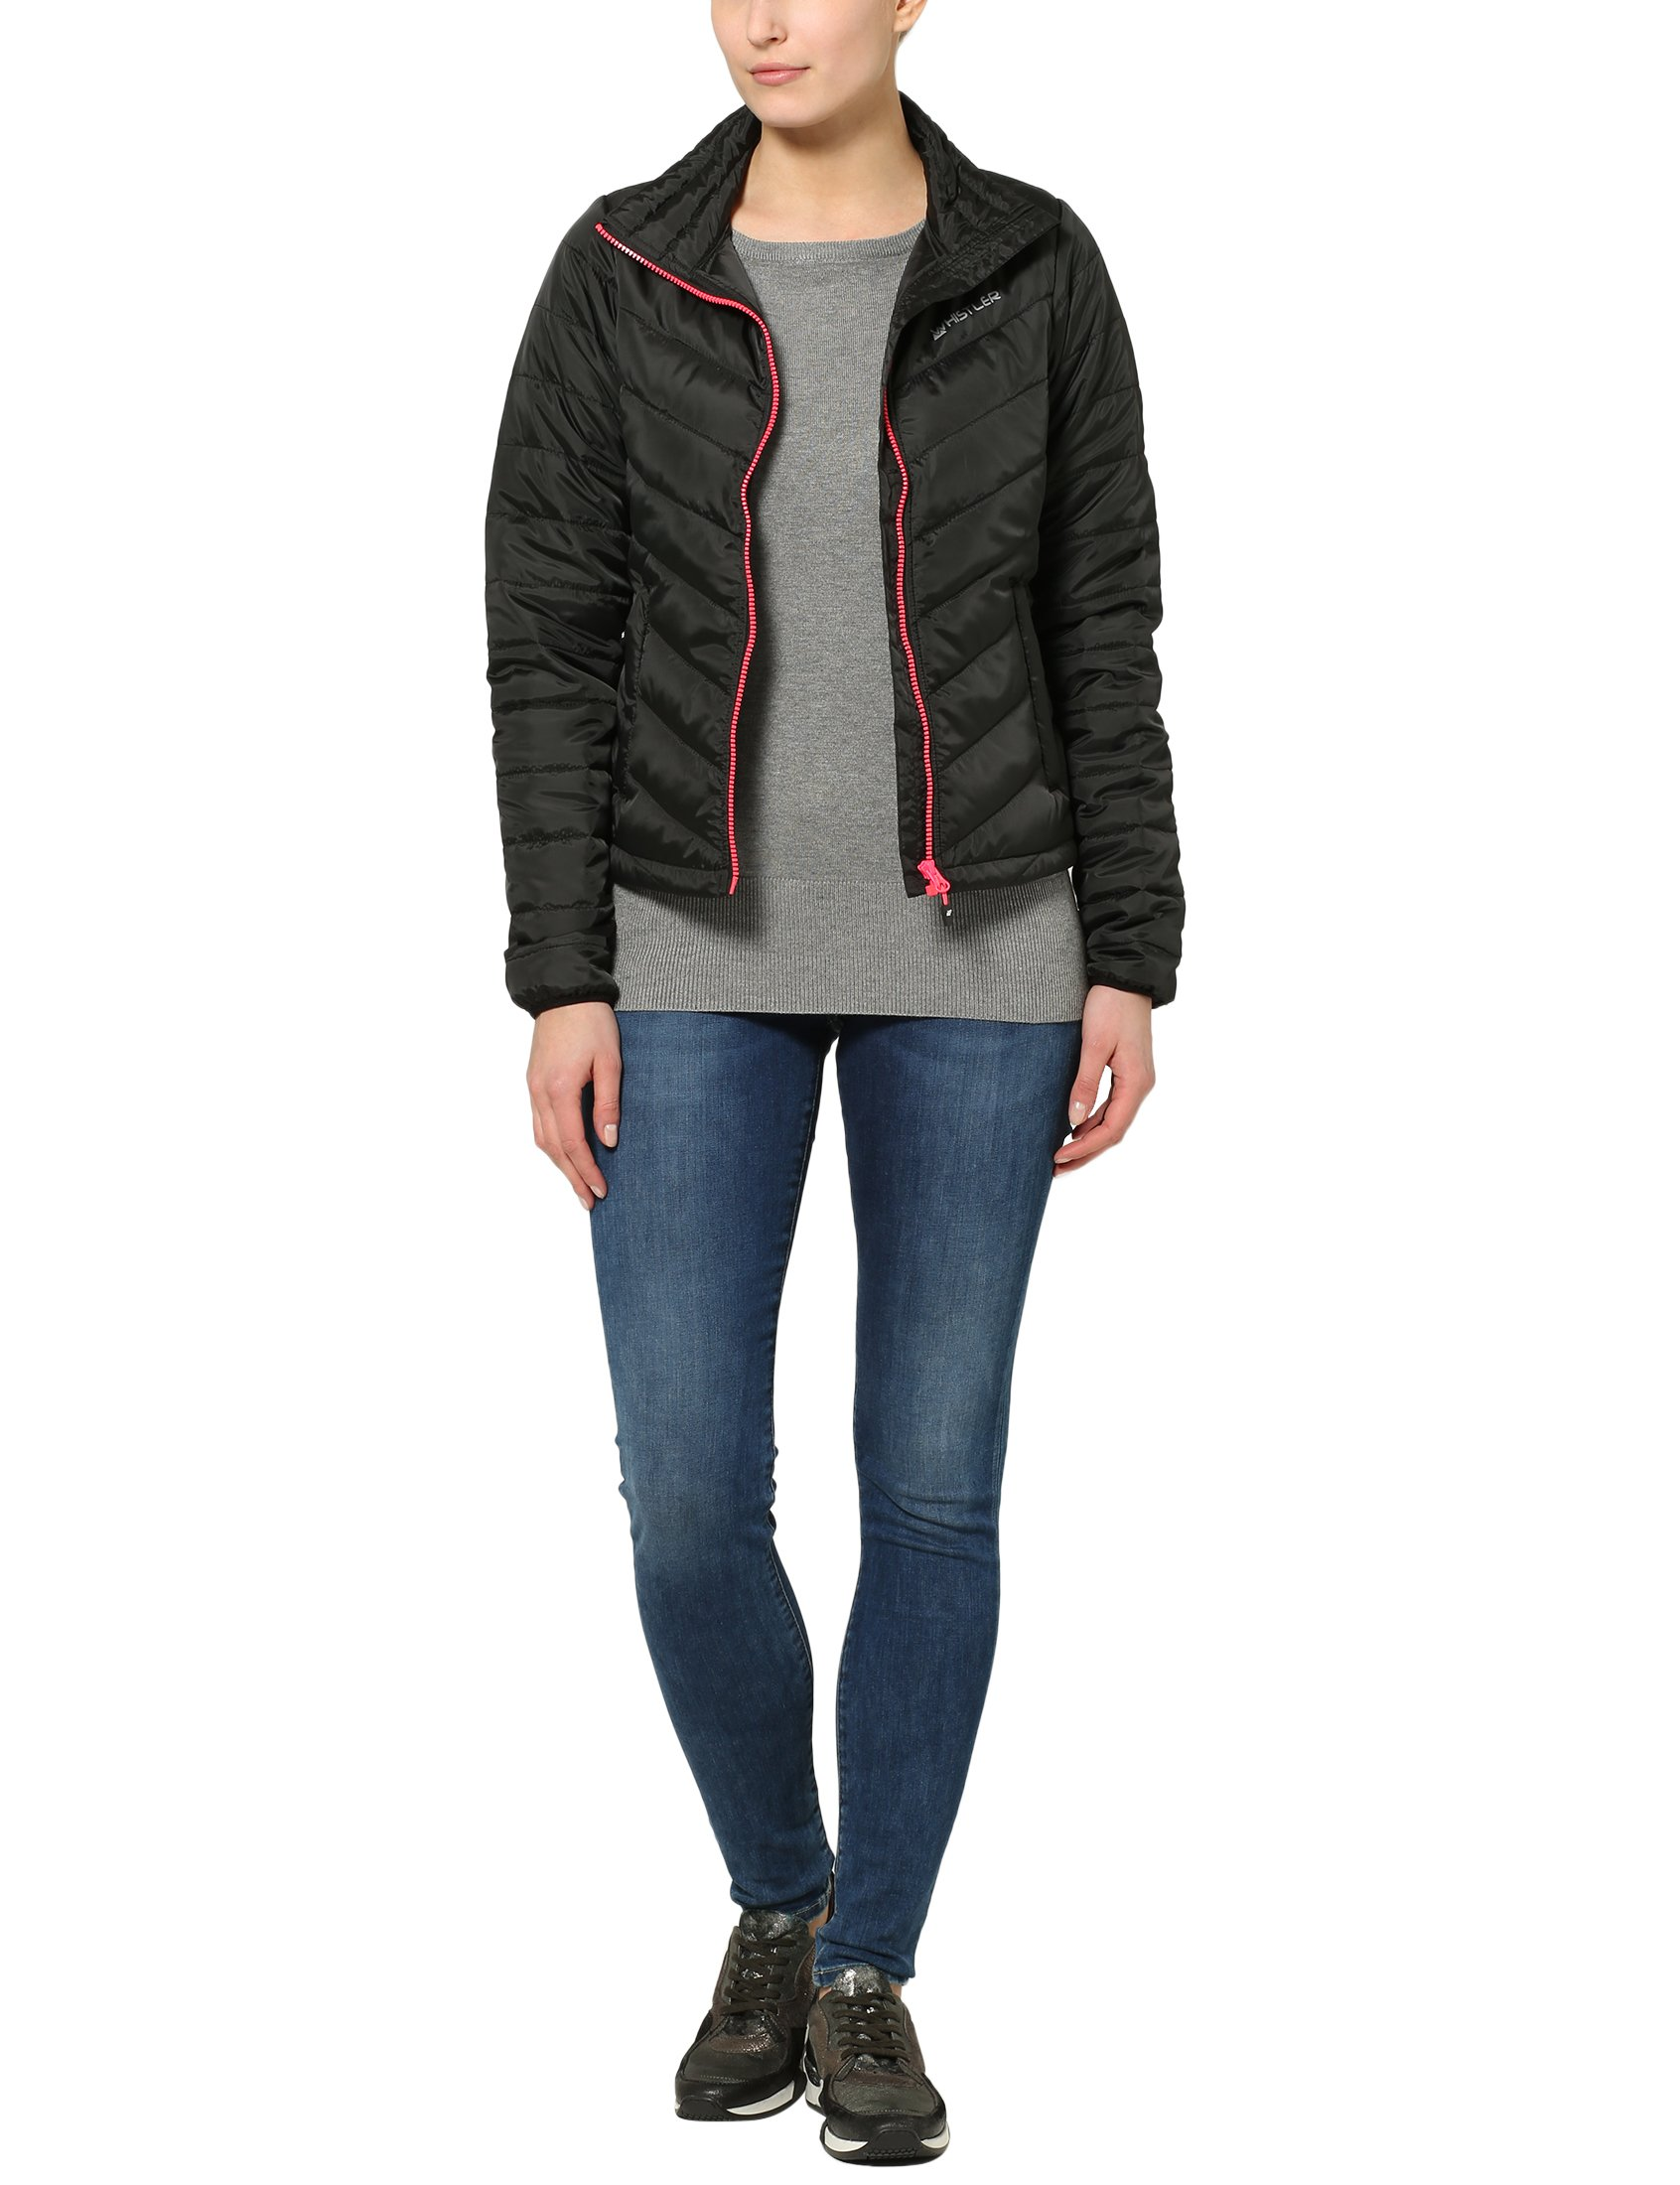 81neW6gly4L - Ultrasport Whistler Women's Quilted Jacket Foggia